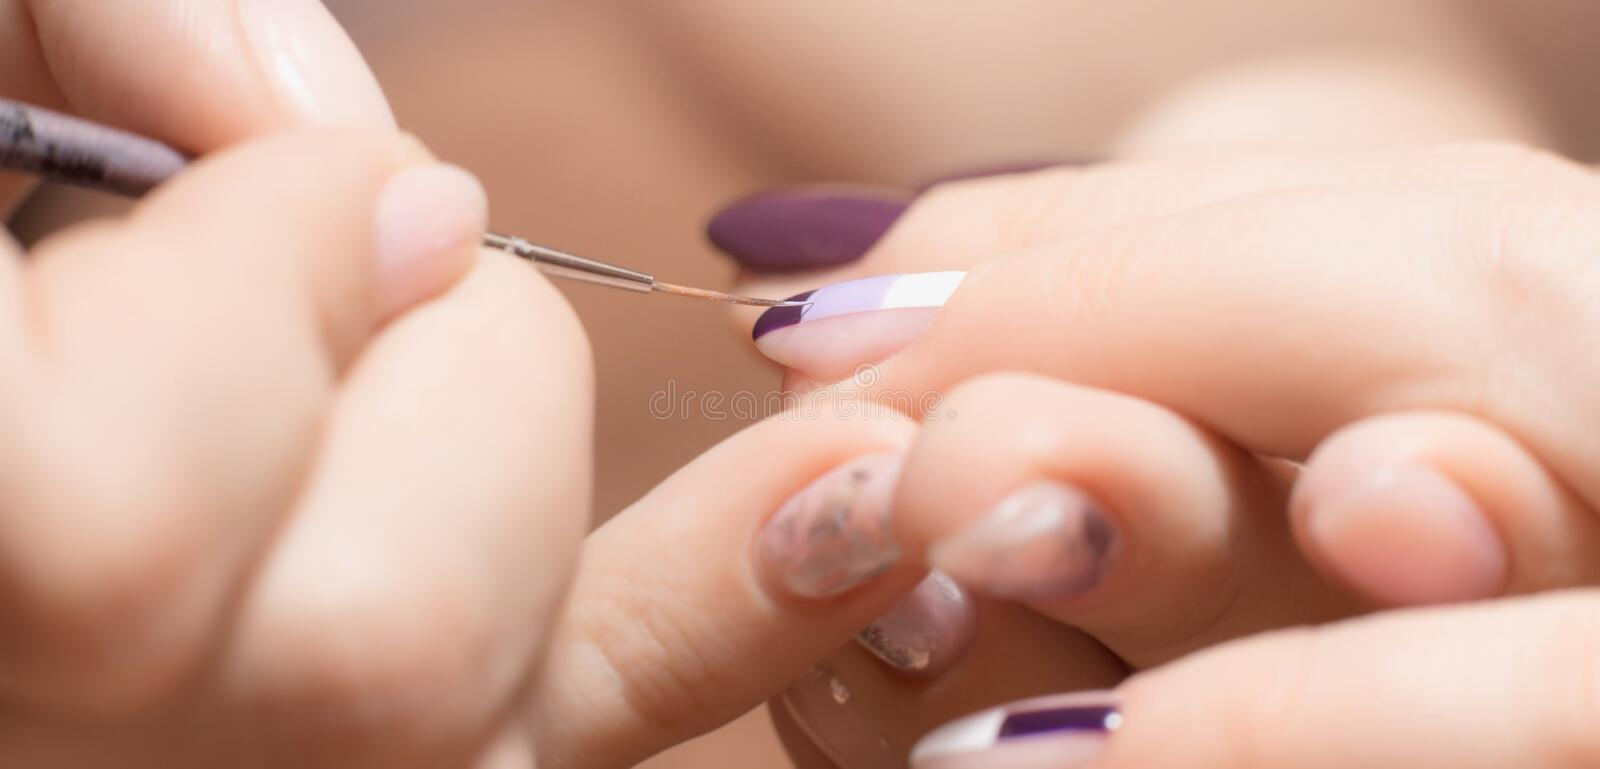 manicure pedicuren arkivbilder